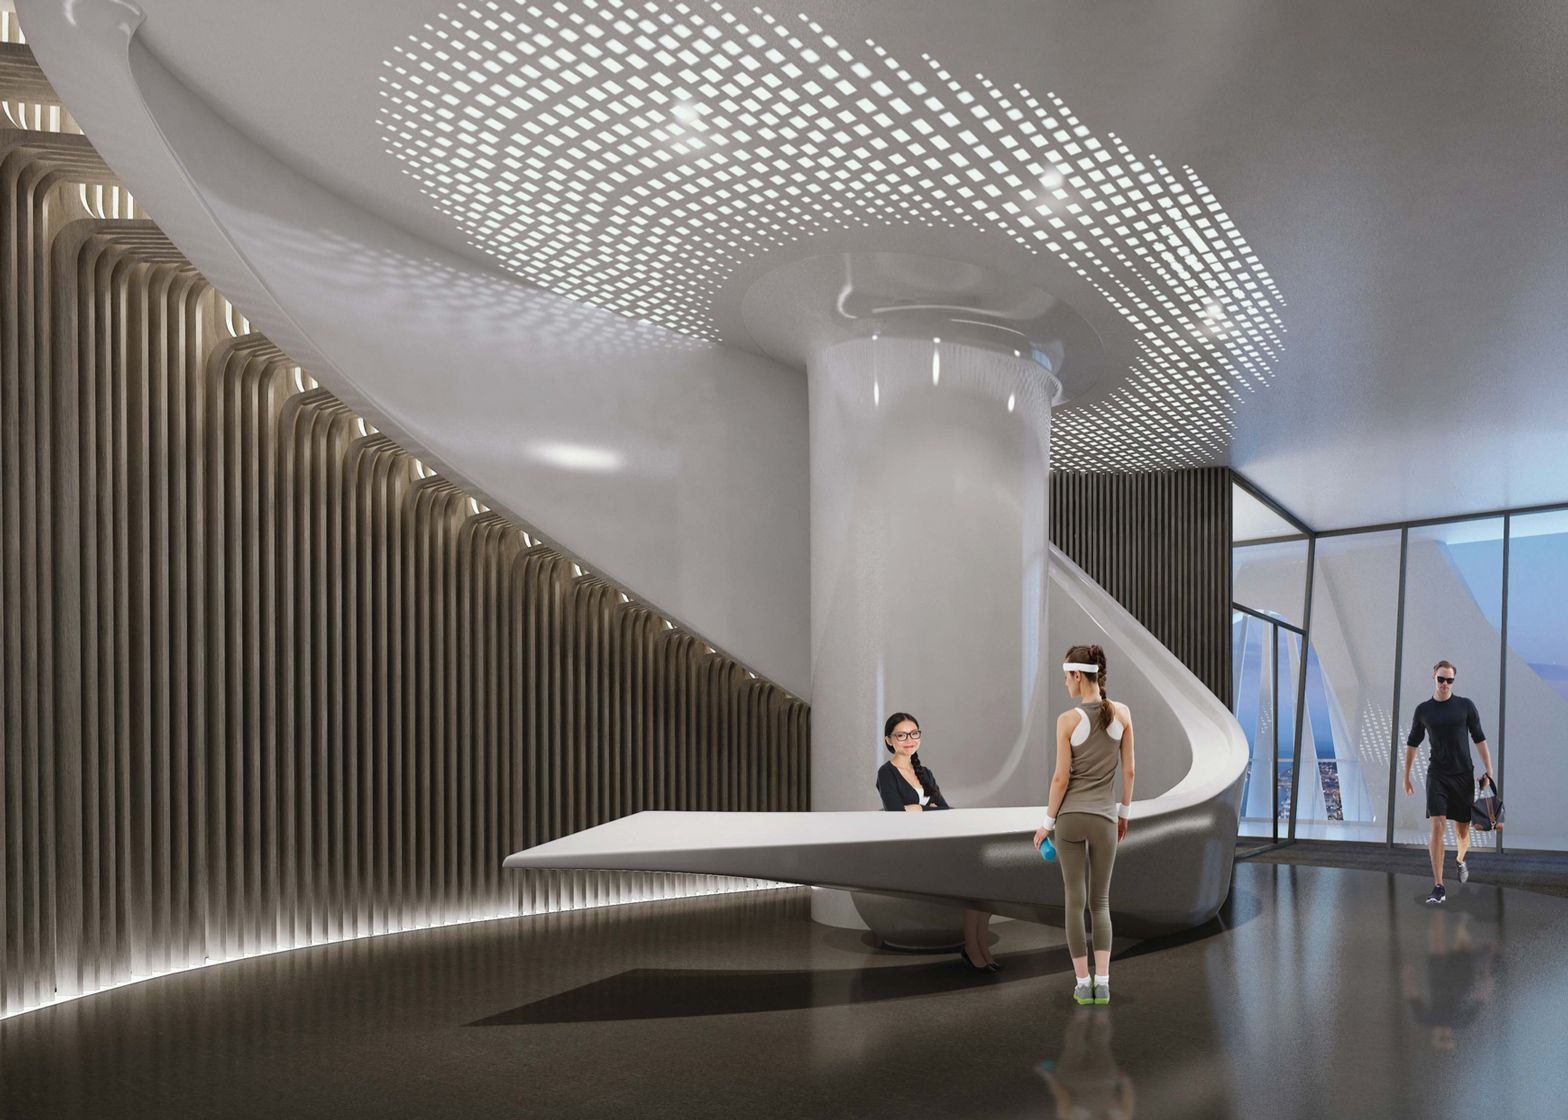 zaha hadid 39 s interiors for one thousand museum in miami